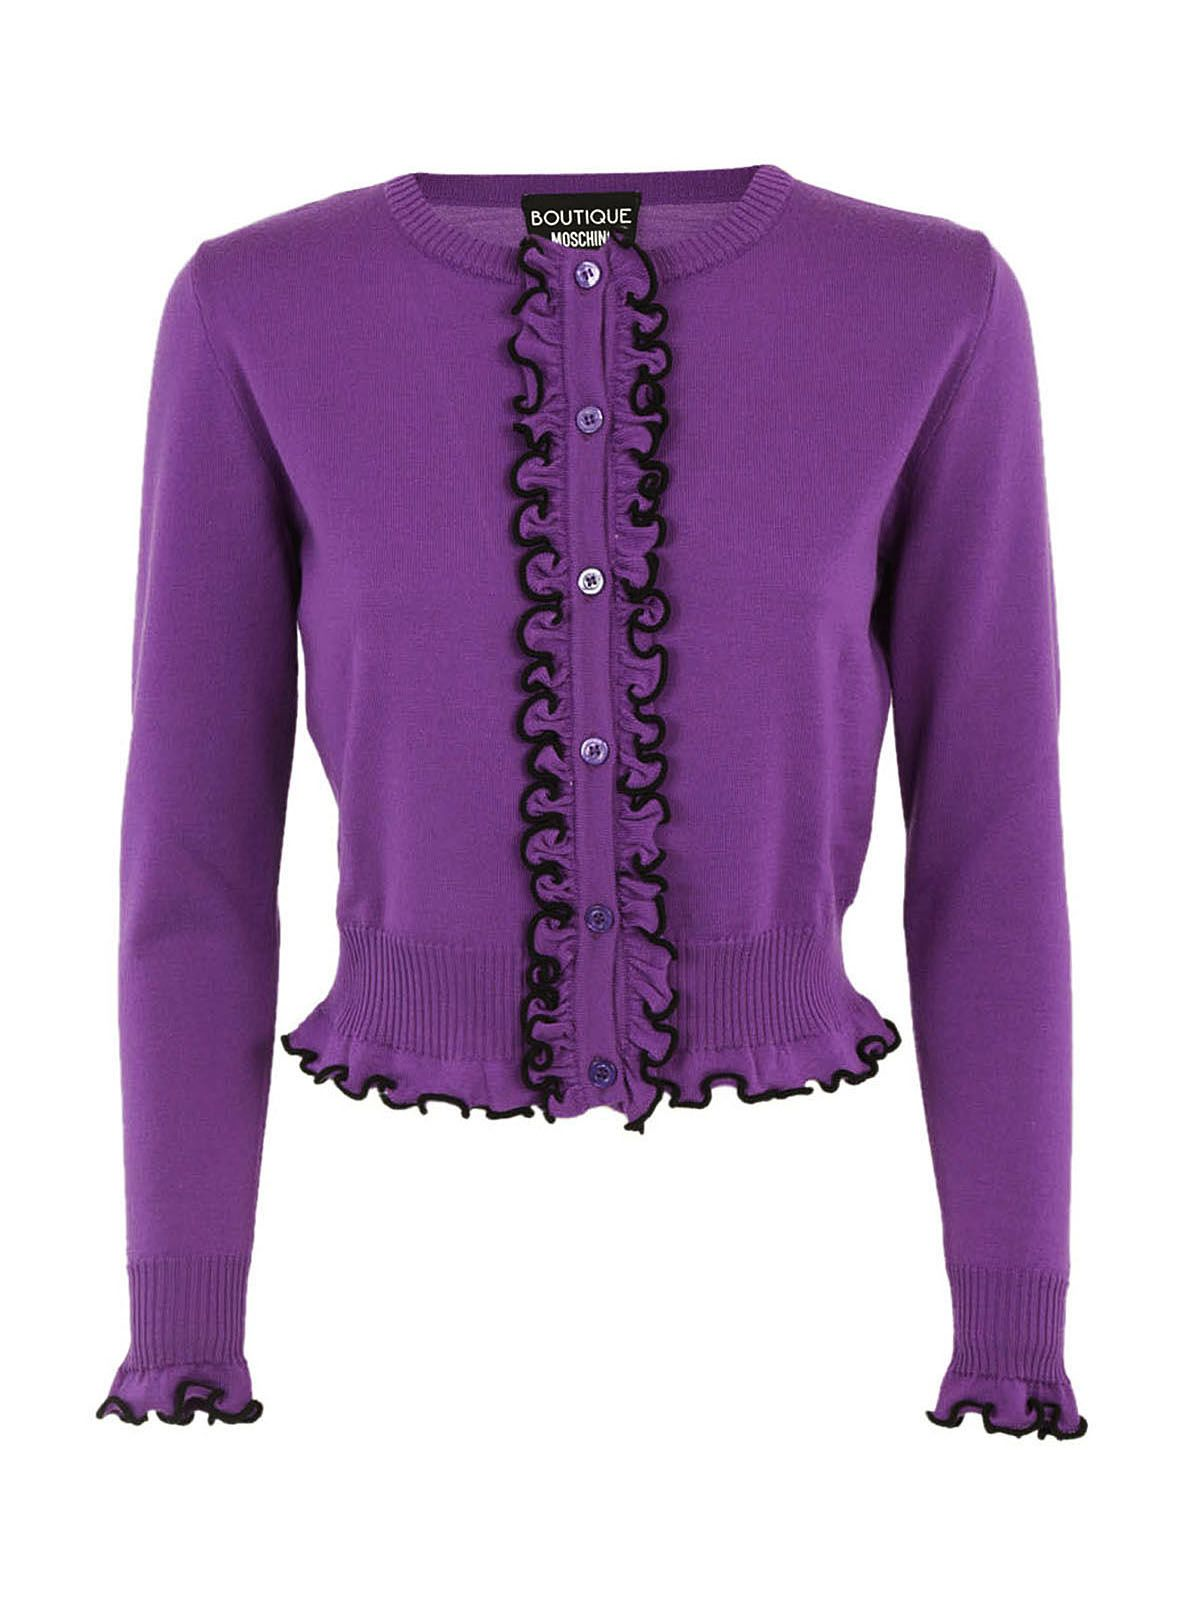 Boutique Moschino Frill Cardigan